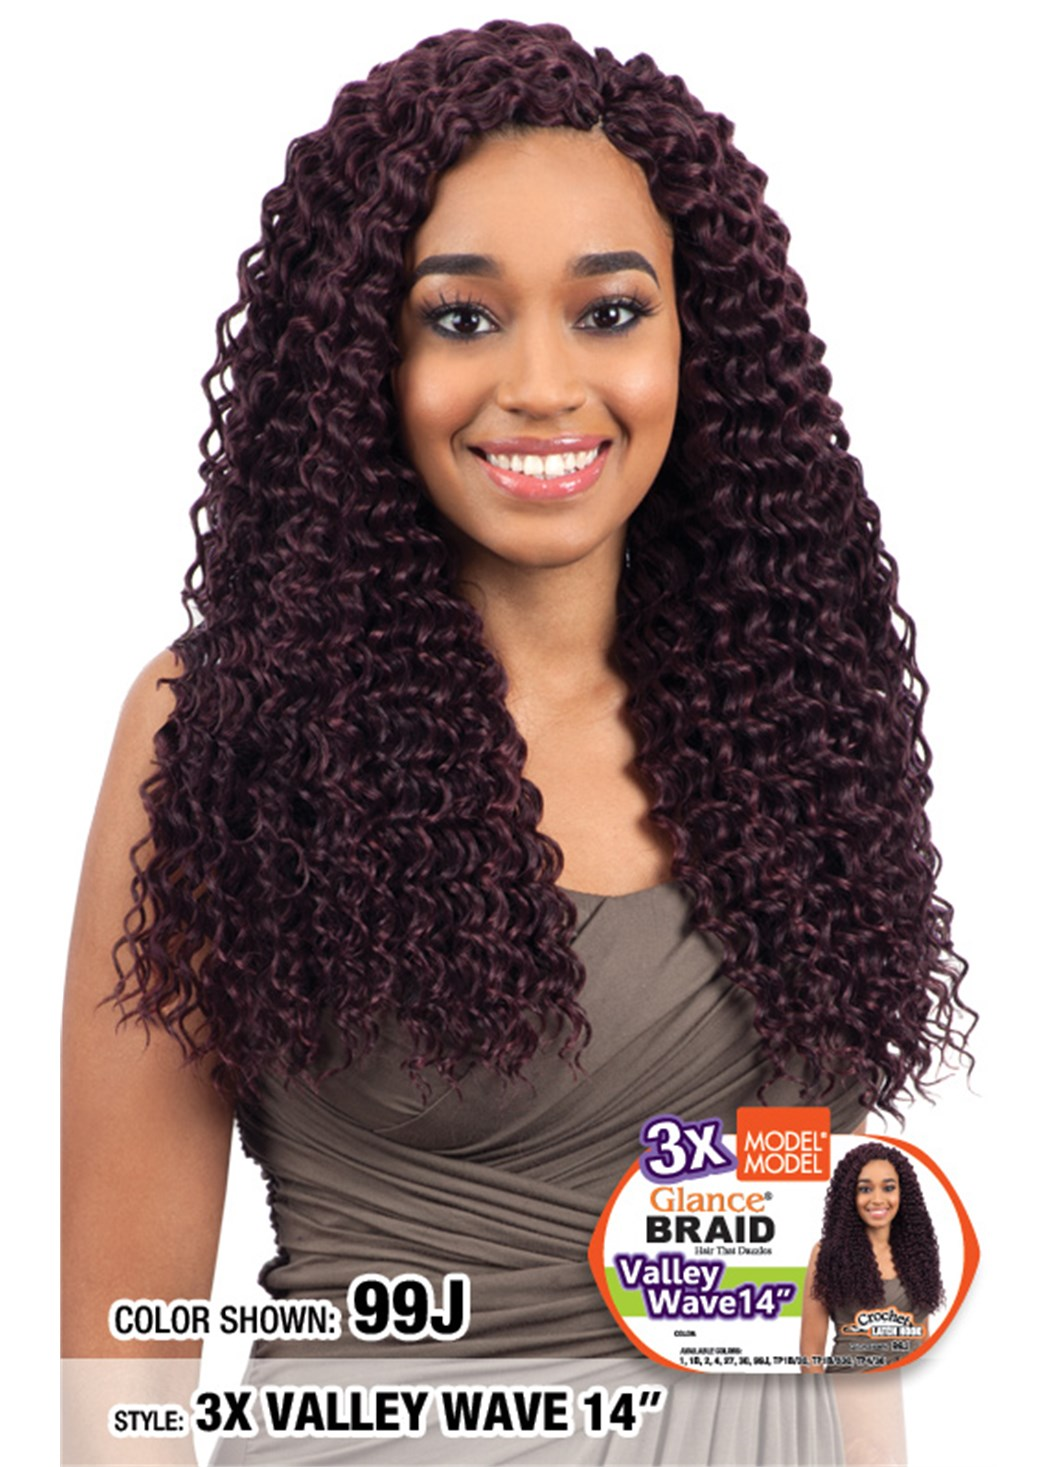 Model Model SYNTHETIC BRAID GLANCE 3X VALLEY WAVE 14